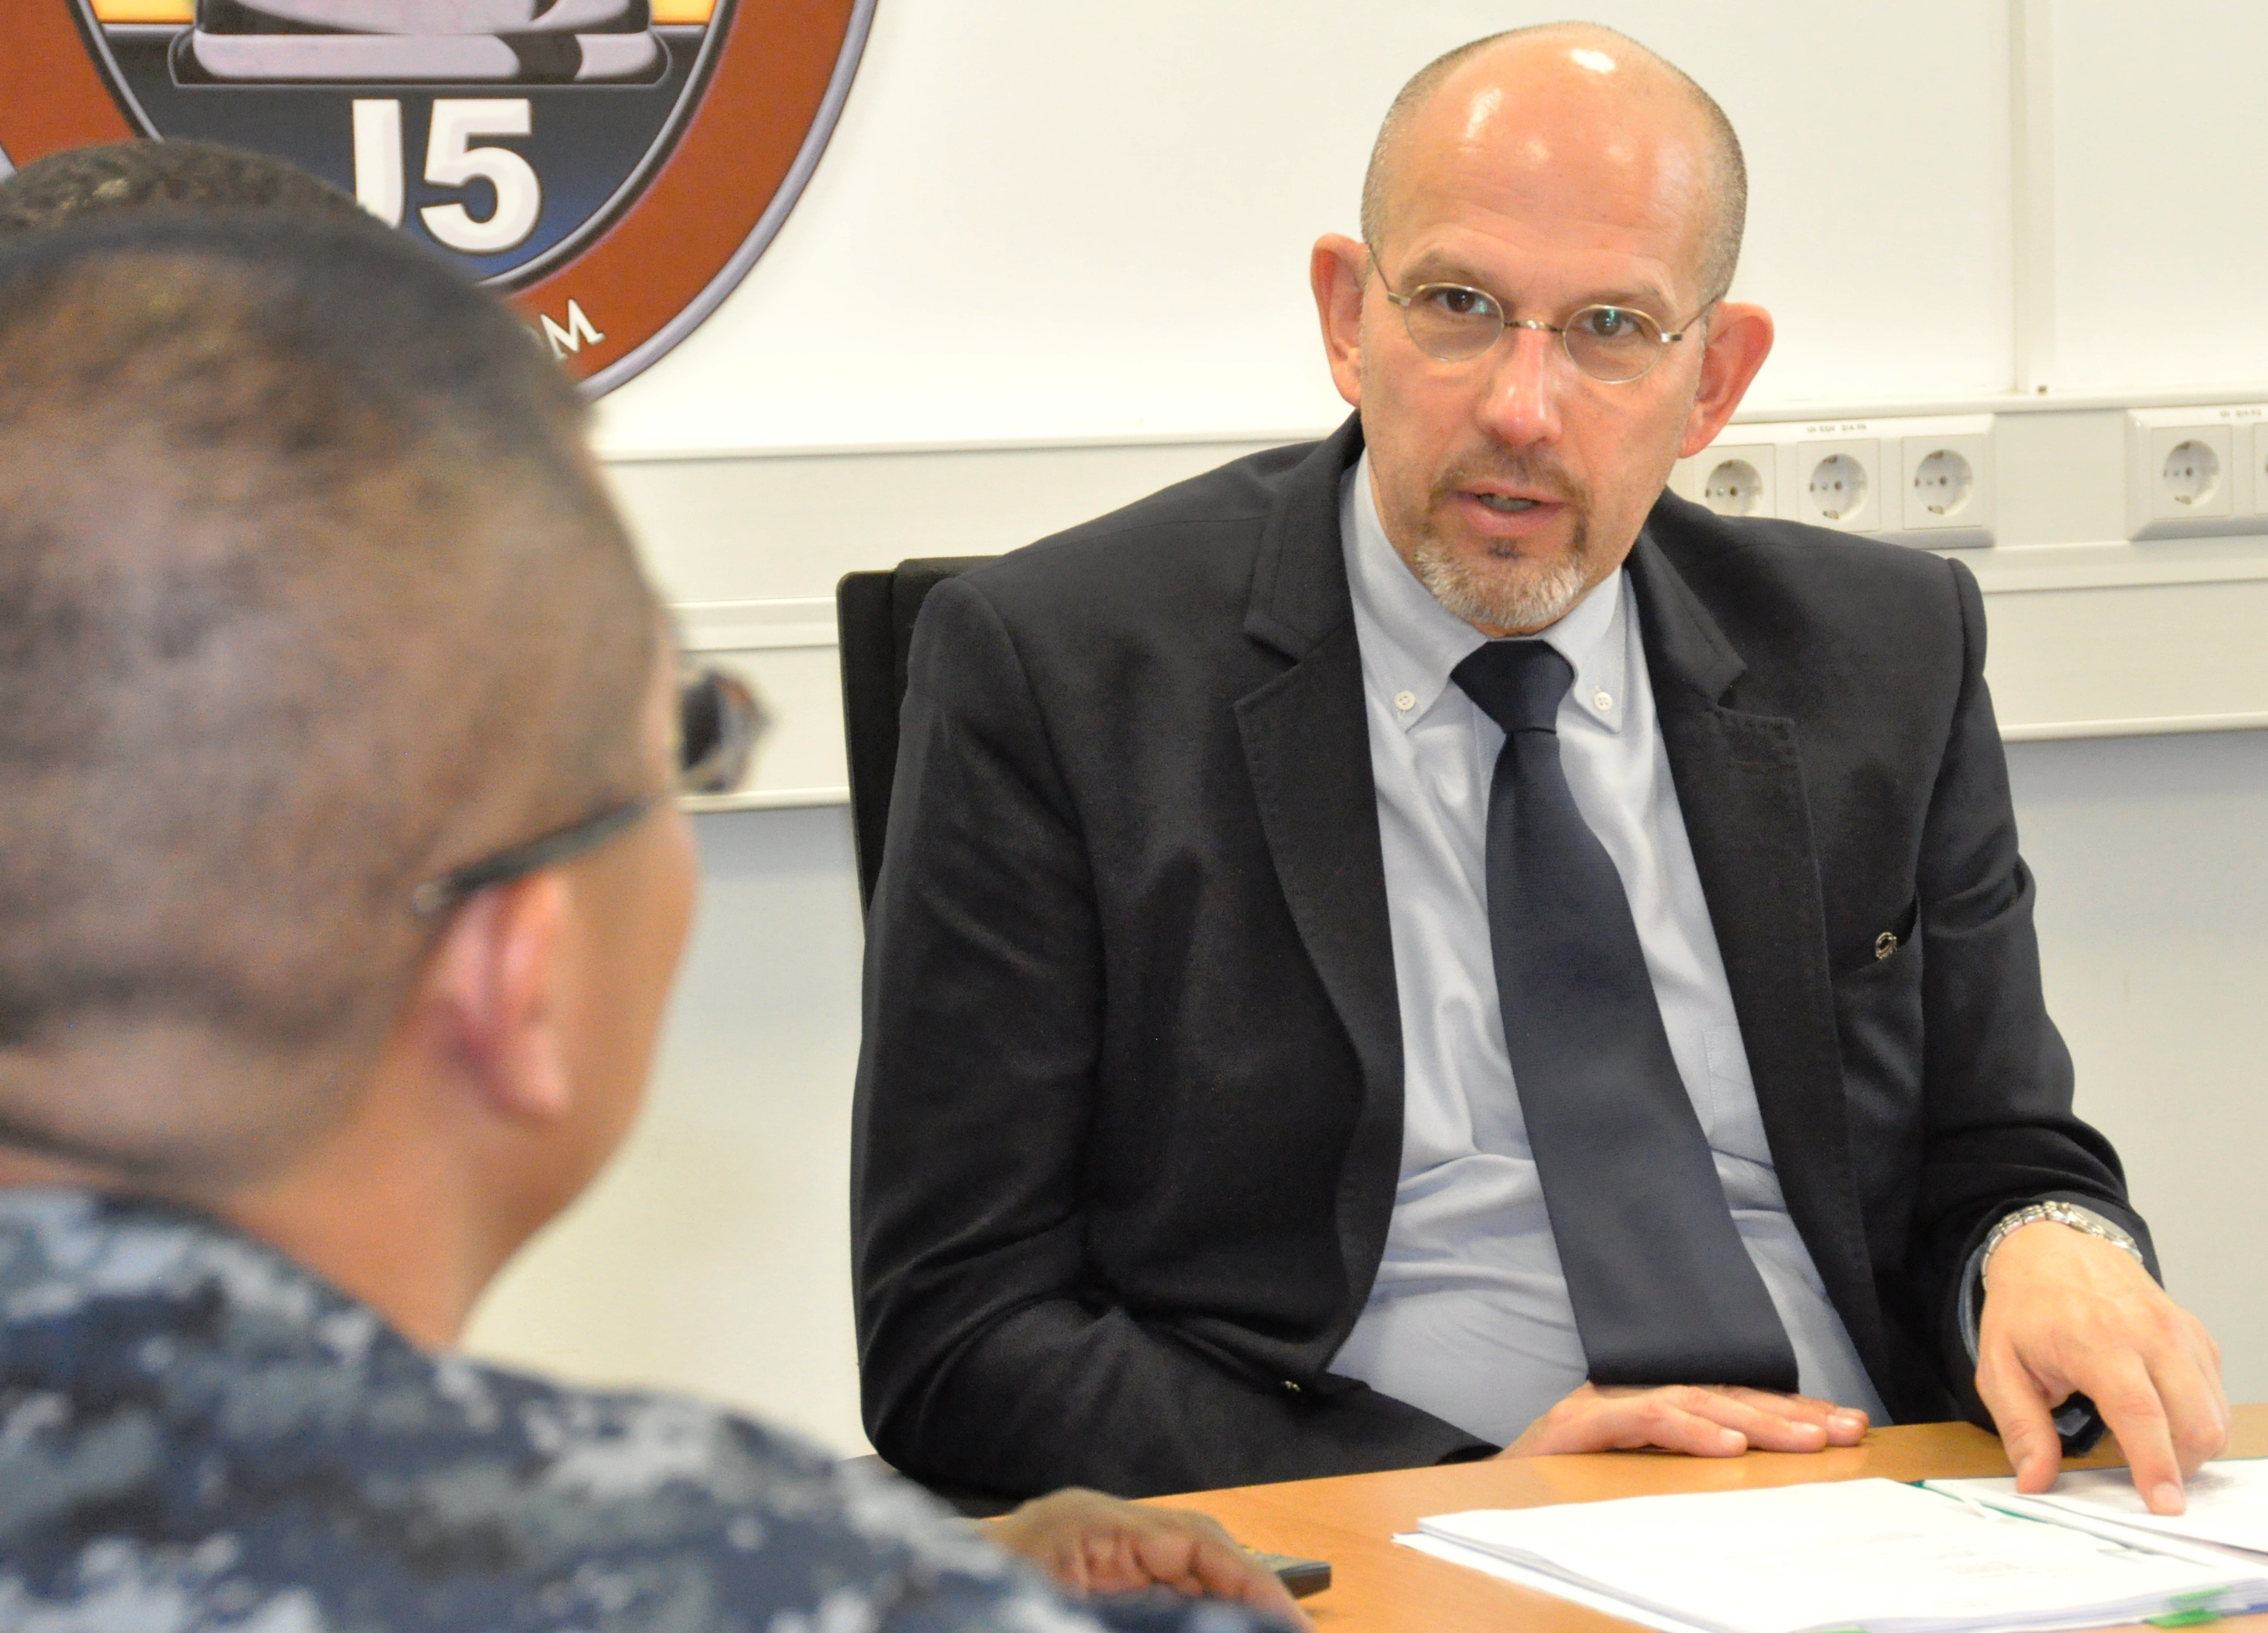 Multinational Cooperation Center hosts initial NATO staff exchange: Michel Soula, Head of all NATO Operations but Afghanistan, met with AFRICOM staff during a recent staff exchange visit, conducted Sept. 10, 2015, at AFRICOM's headquarters, U.S. Army Garrison, Stuttgart, GE. The MNCC is AFRICOM's hub for multinational cooperation and is primarily responsible for integrating international partners into staff processes that inform strategic planning and operations.  (USAFRICOM photo by Brenda Law/Released)